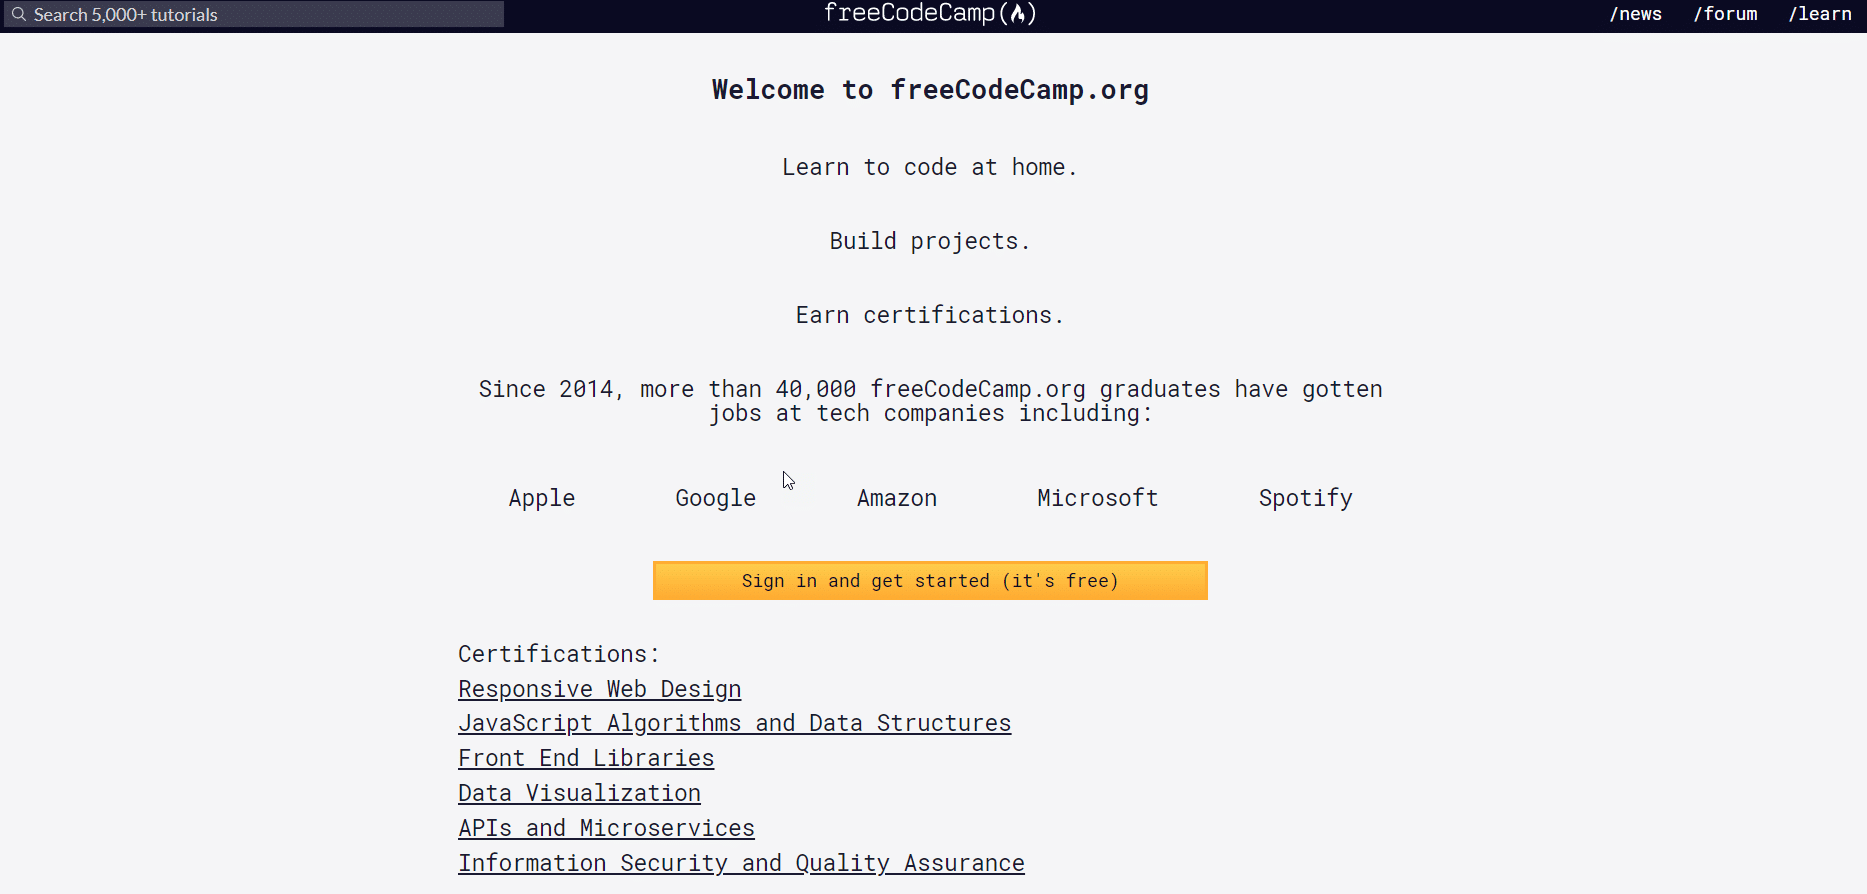 free code camp website homepage